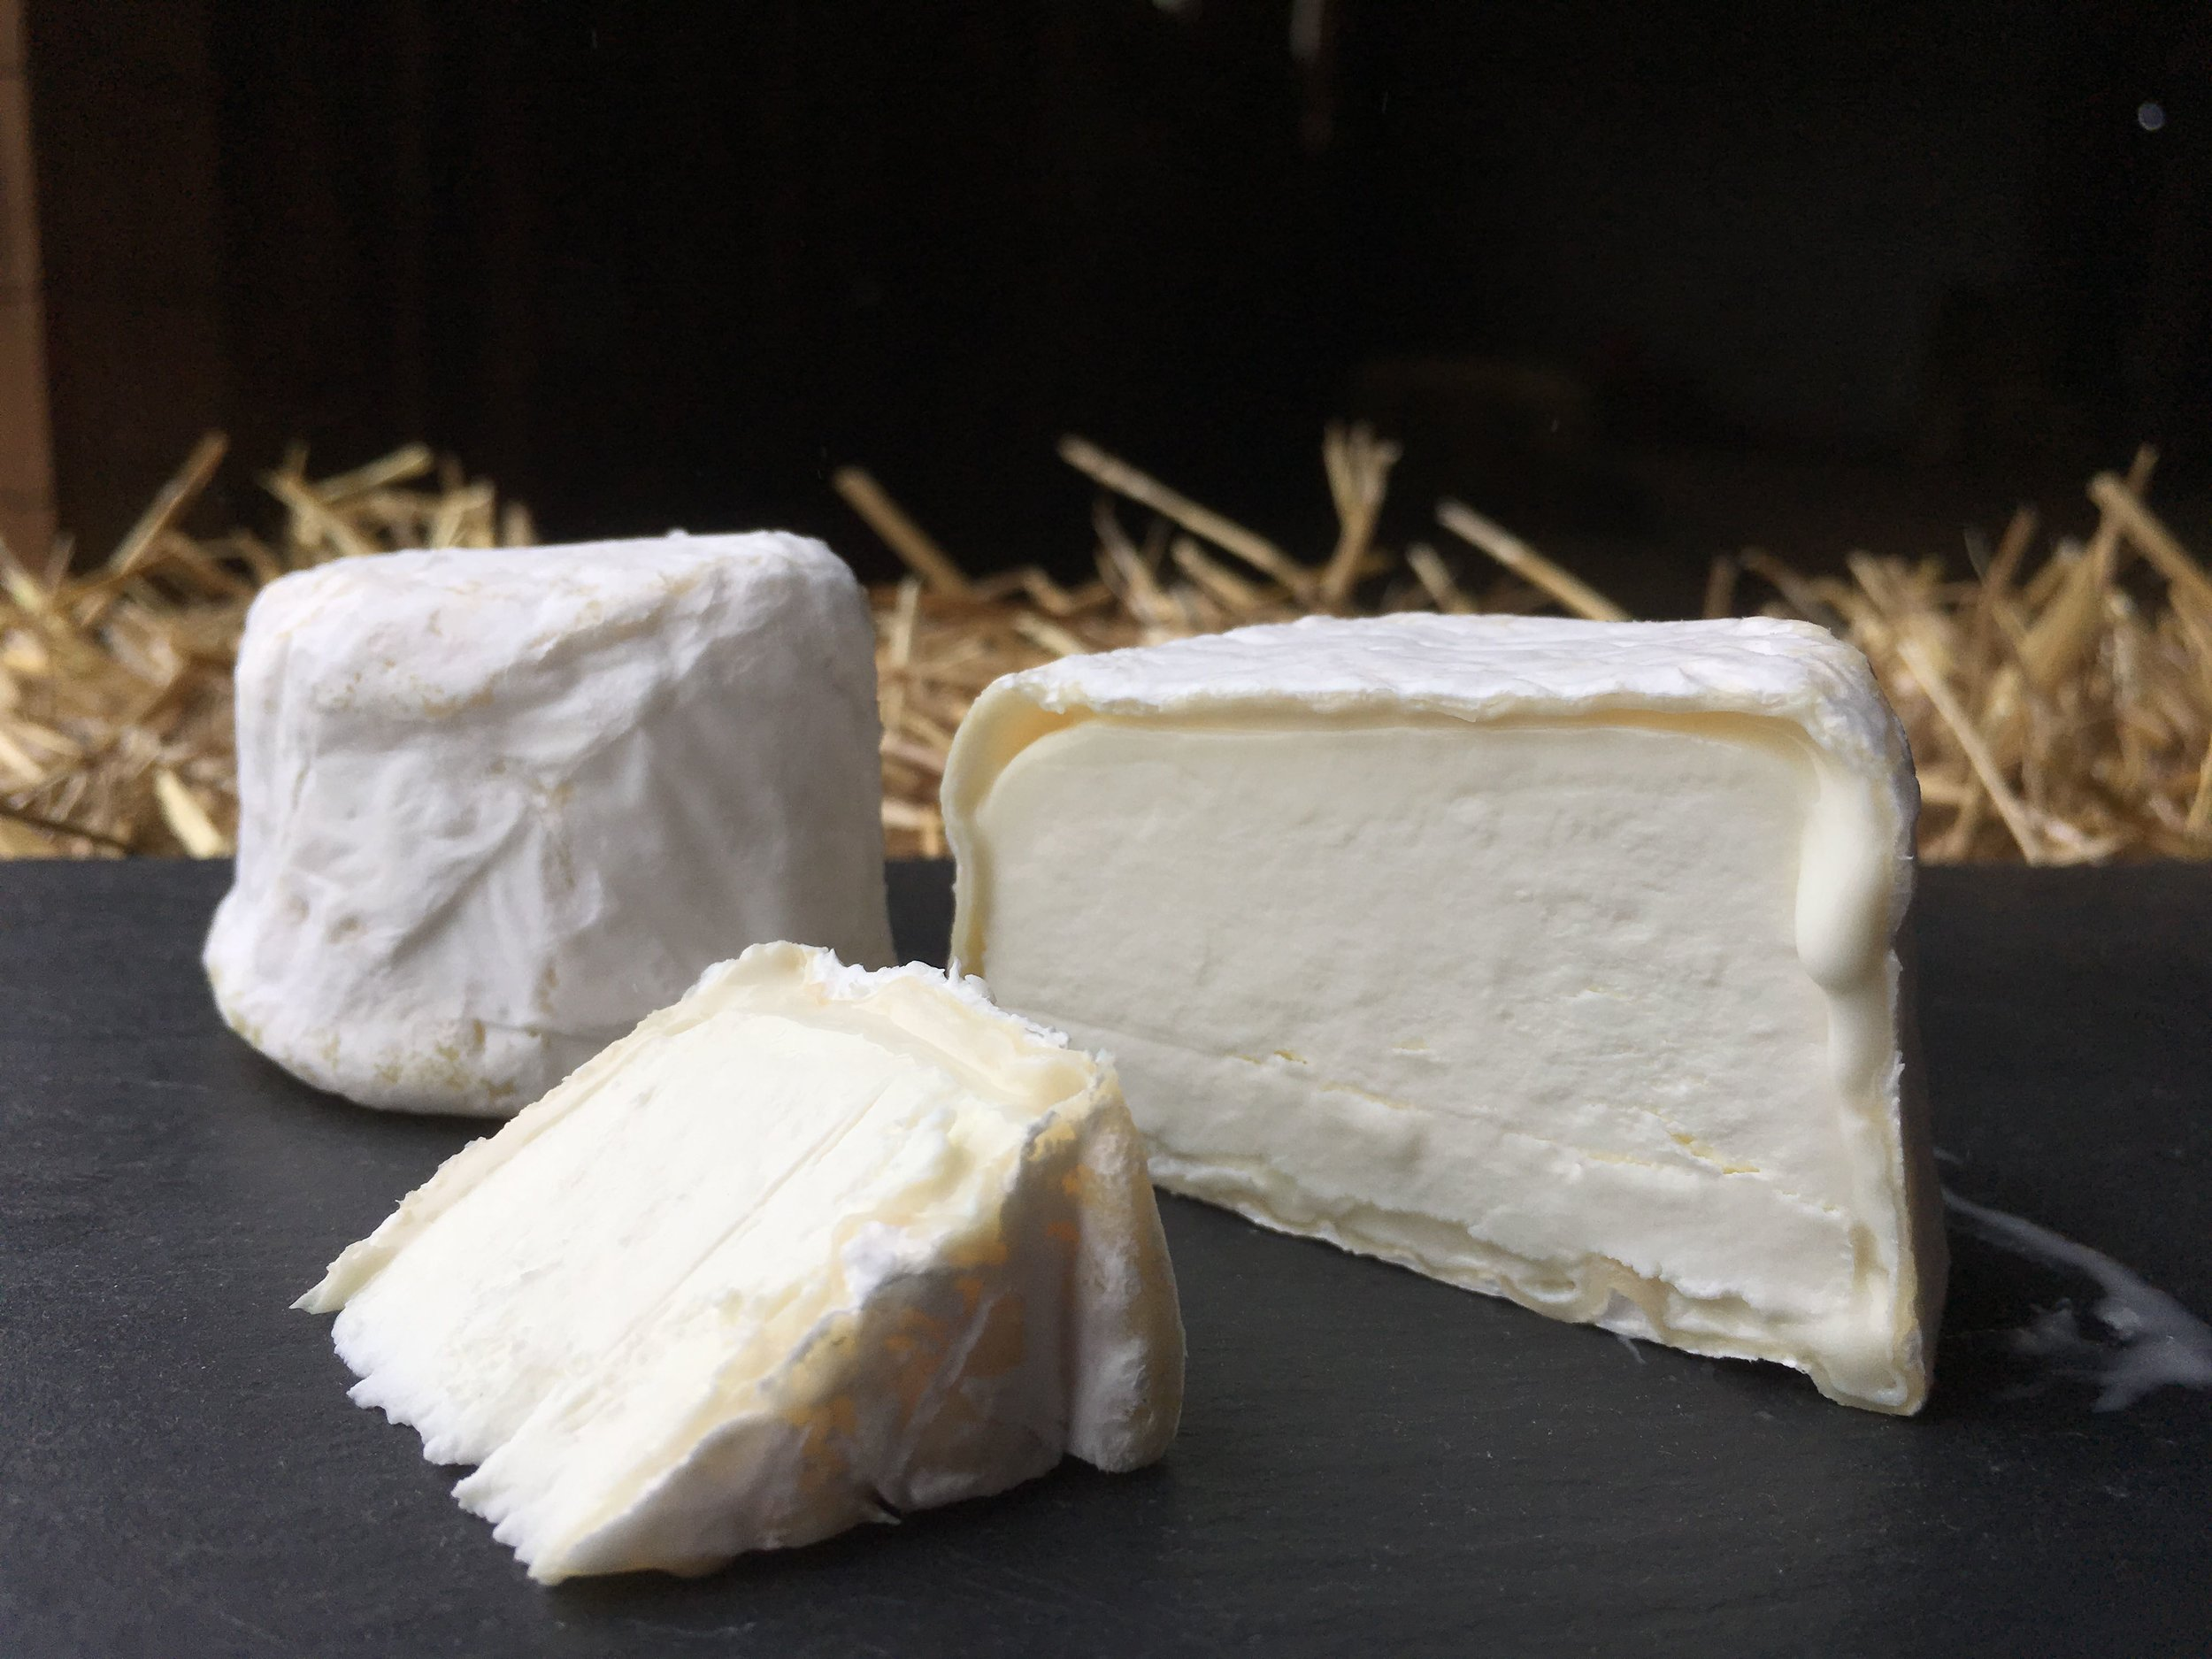 Catoctin , our original bloomy rind cheese. Firm and mild when young, aging to creamy and funky over 6-8 weeks.  Available April-January